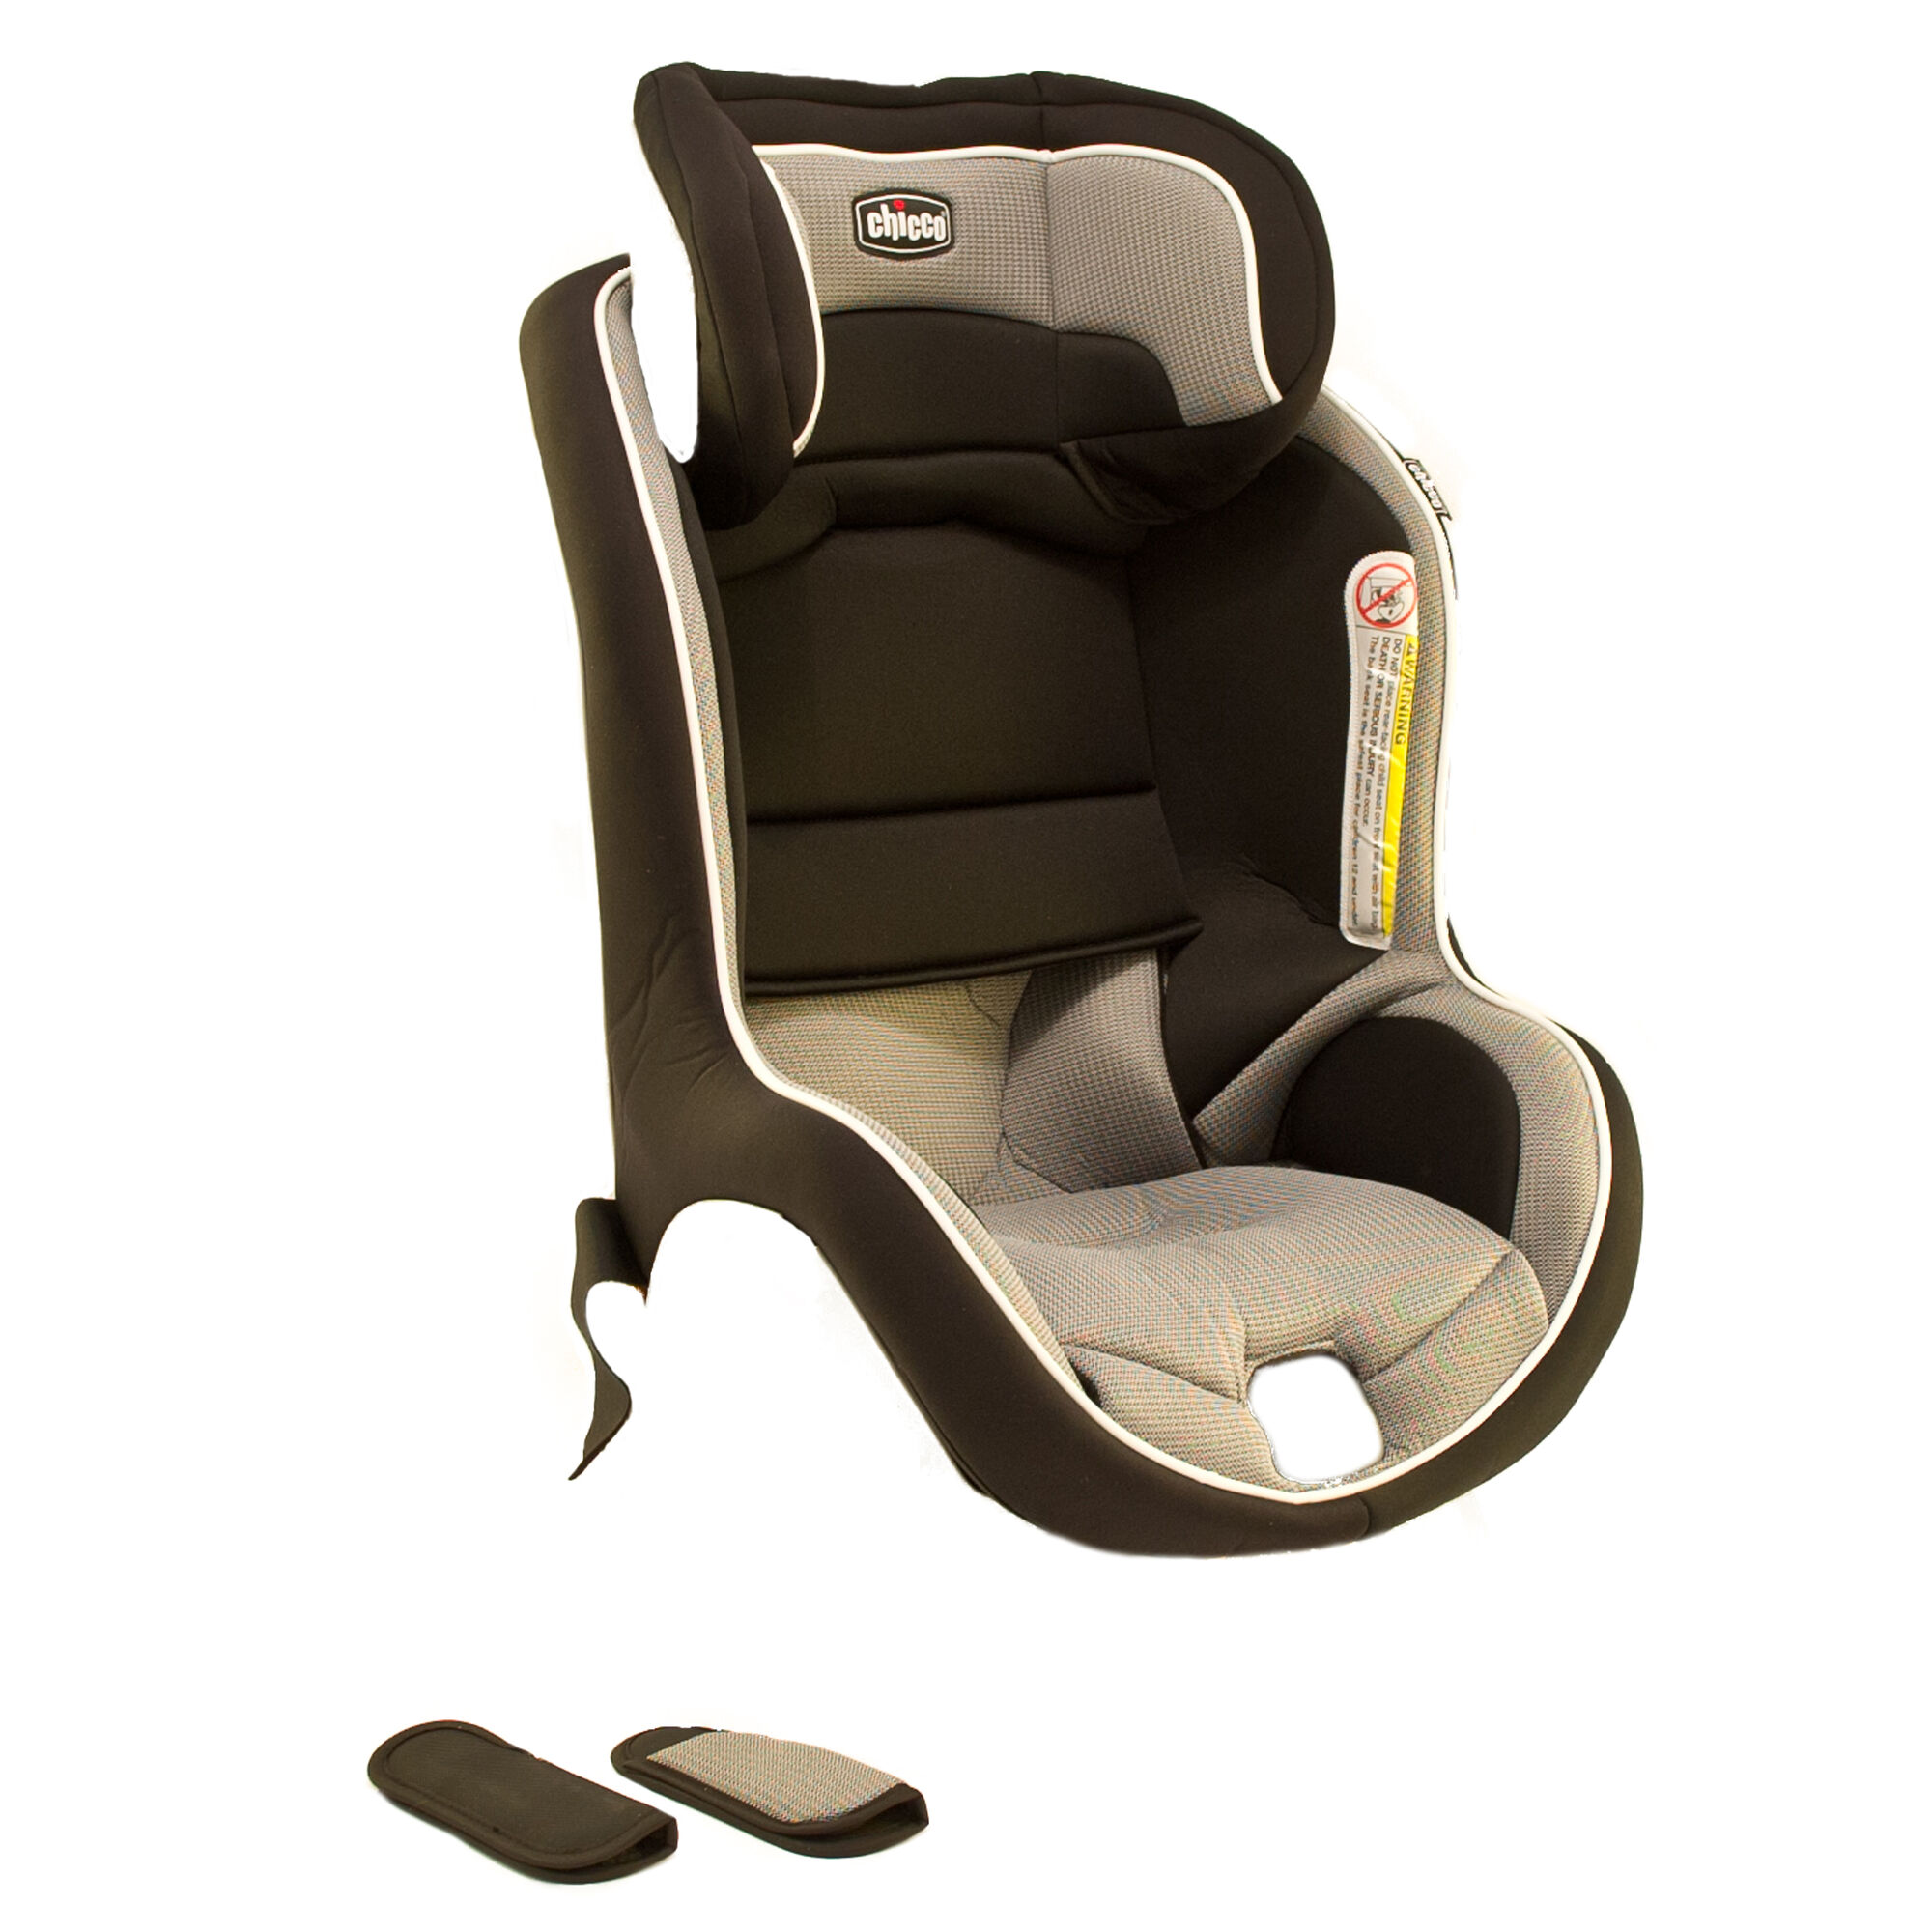 chicco nextfit convertible car seat intrigue autos post. Black Bedroom Furniture Sets. Home Design Ideas